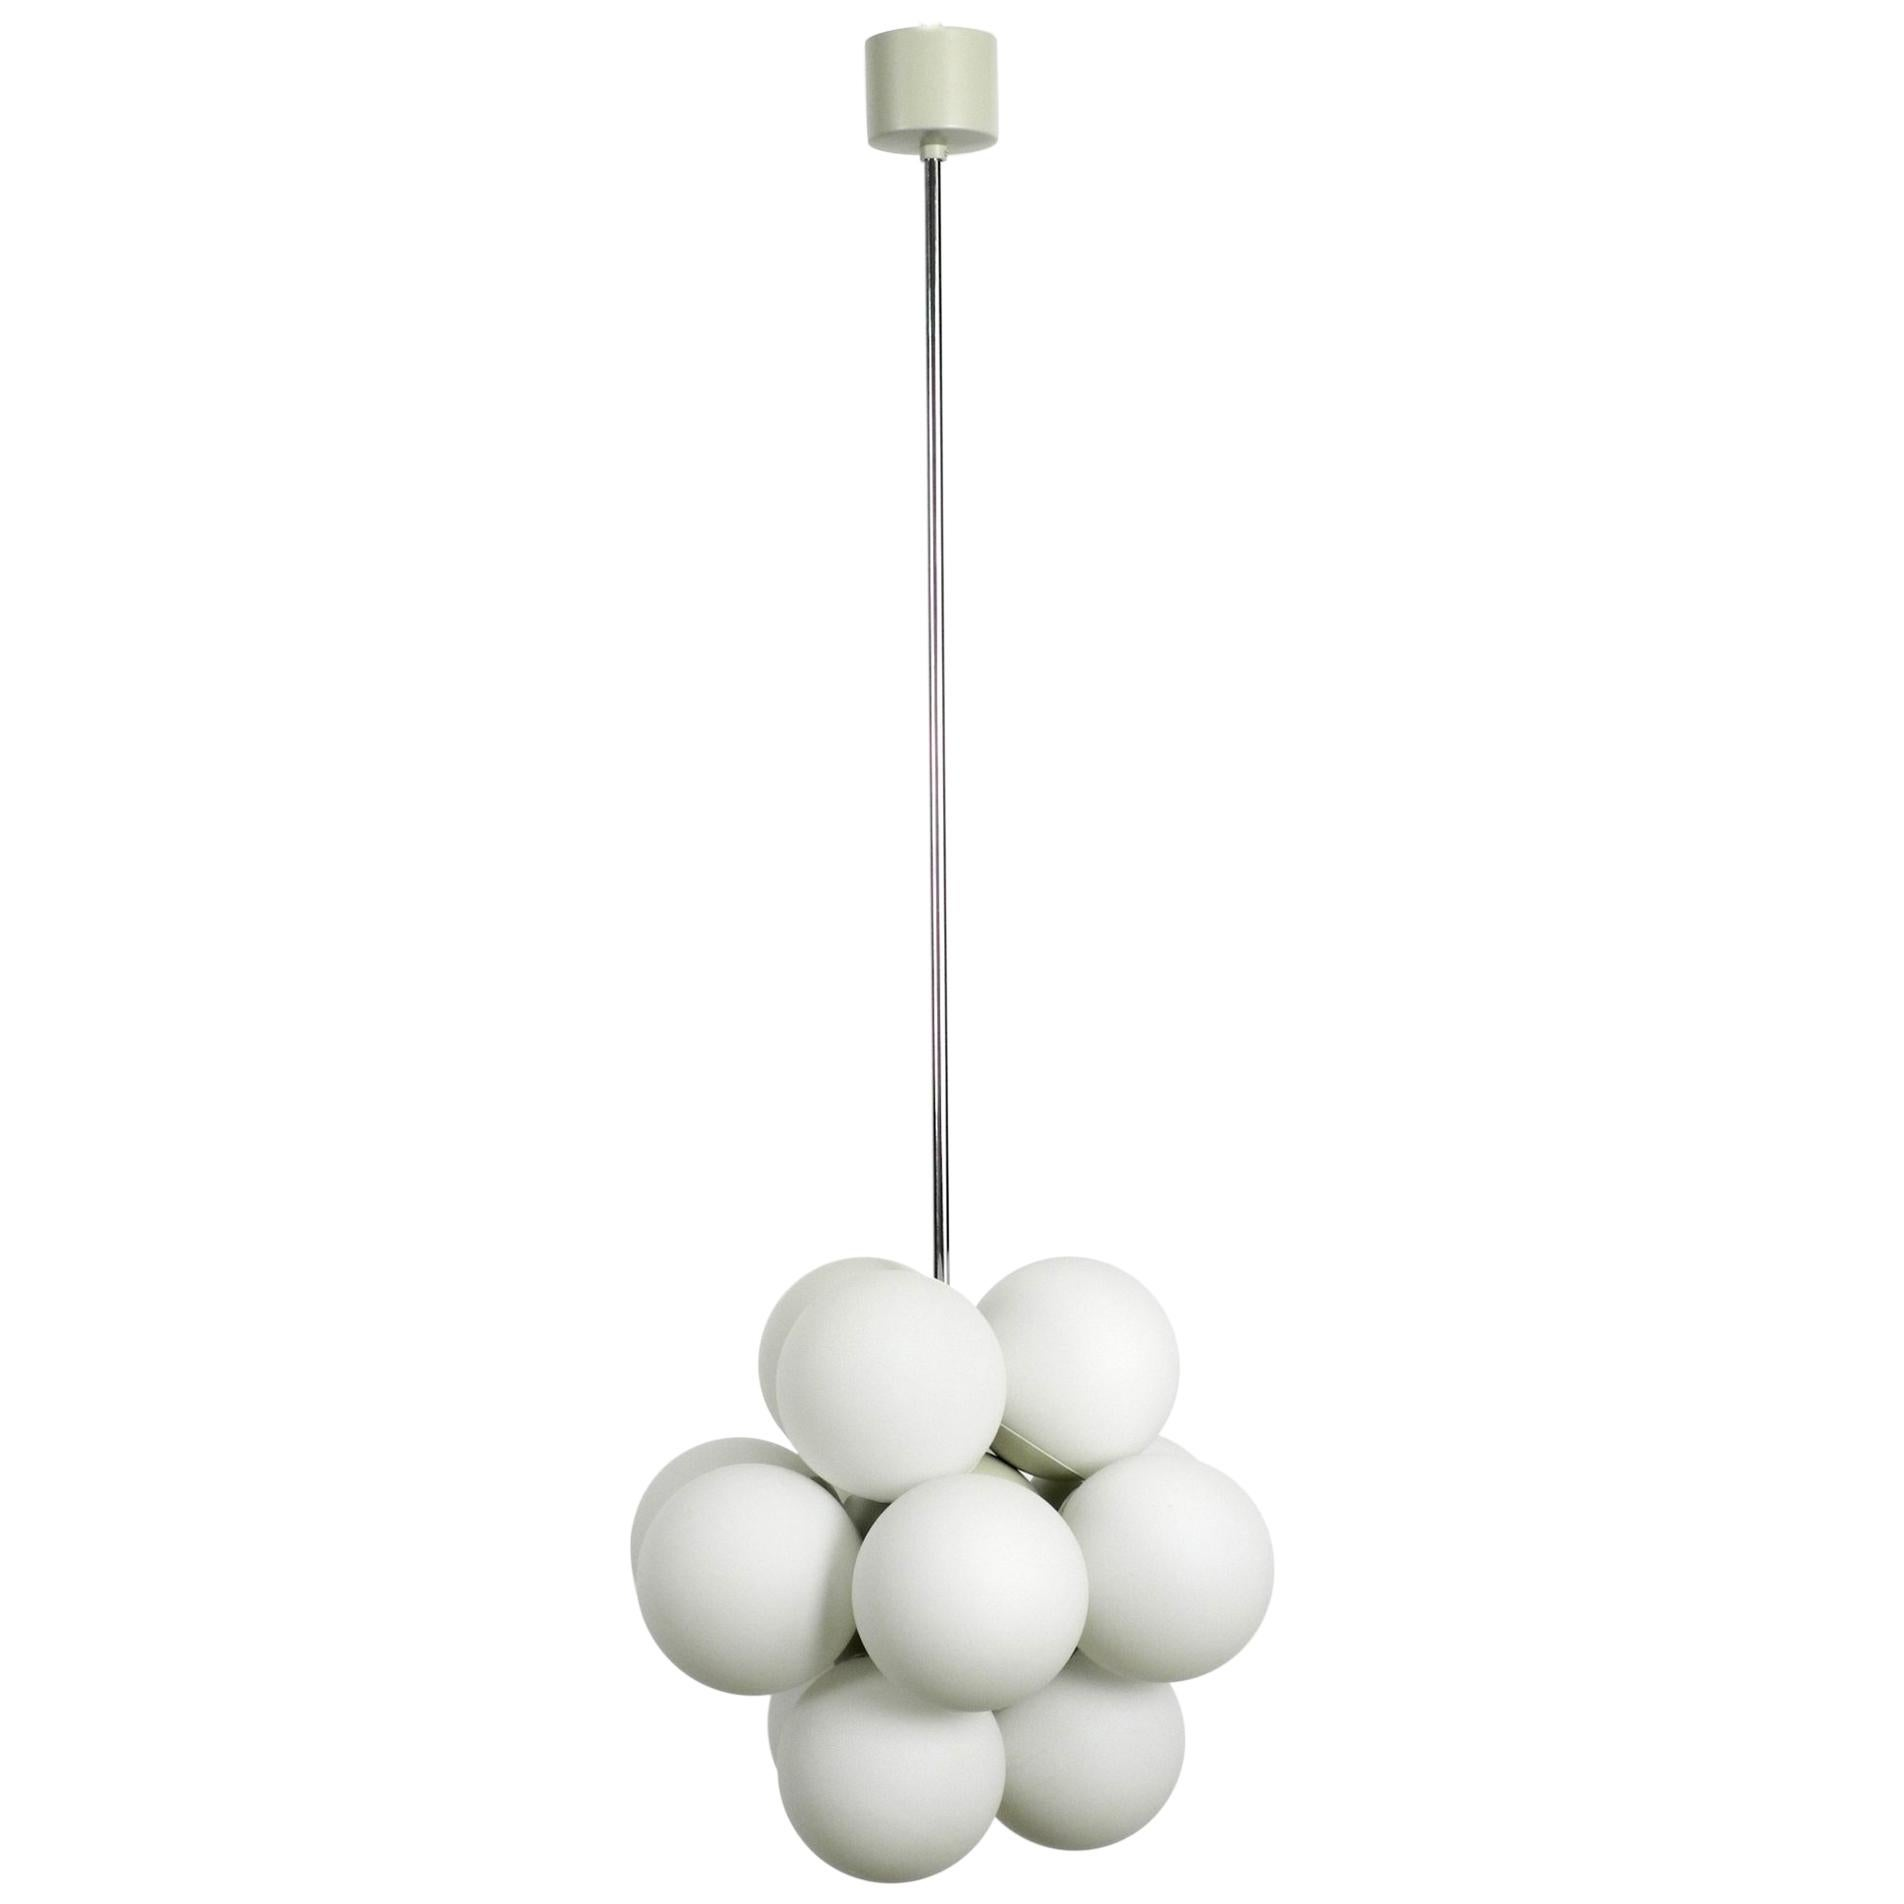 Unused 1960s Atomic Space Age Kaiser Leuchten Ceiling Lamp with 12 Glass Balls